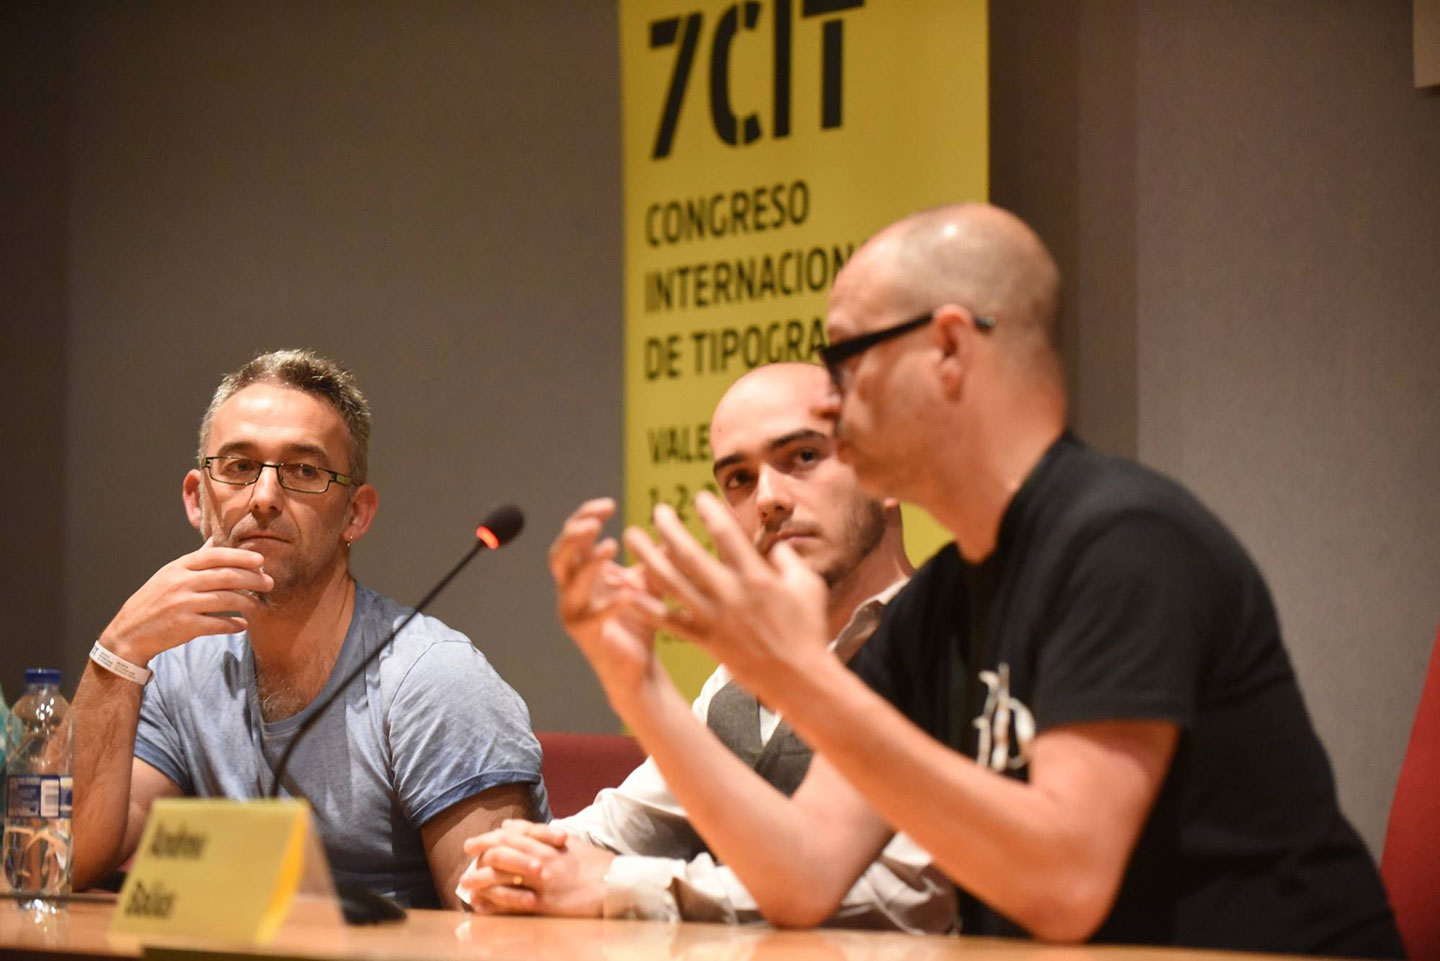 Juan Luis Blanco, Sergio Trujillo and Andreu Balius during the round of questions. Photo: Provi Morillas